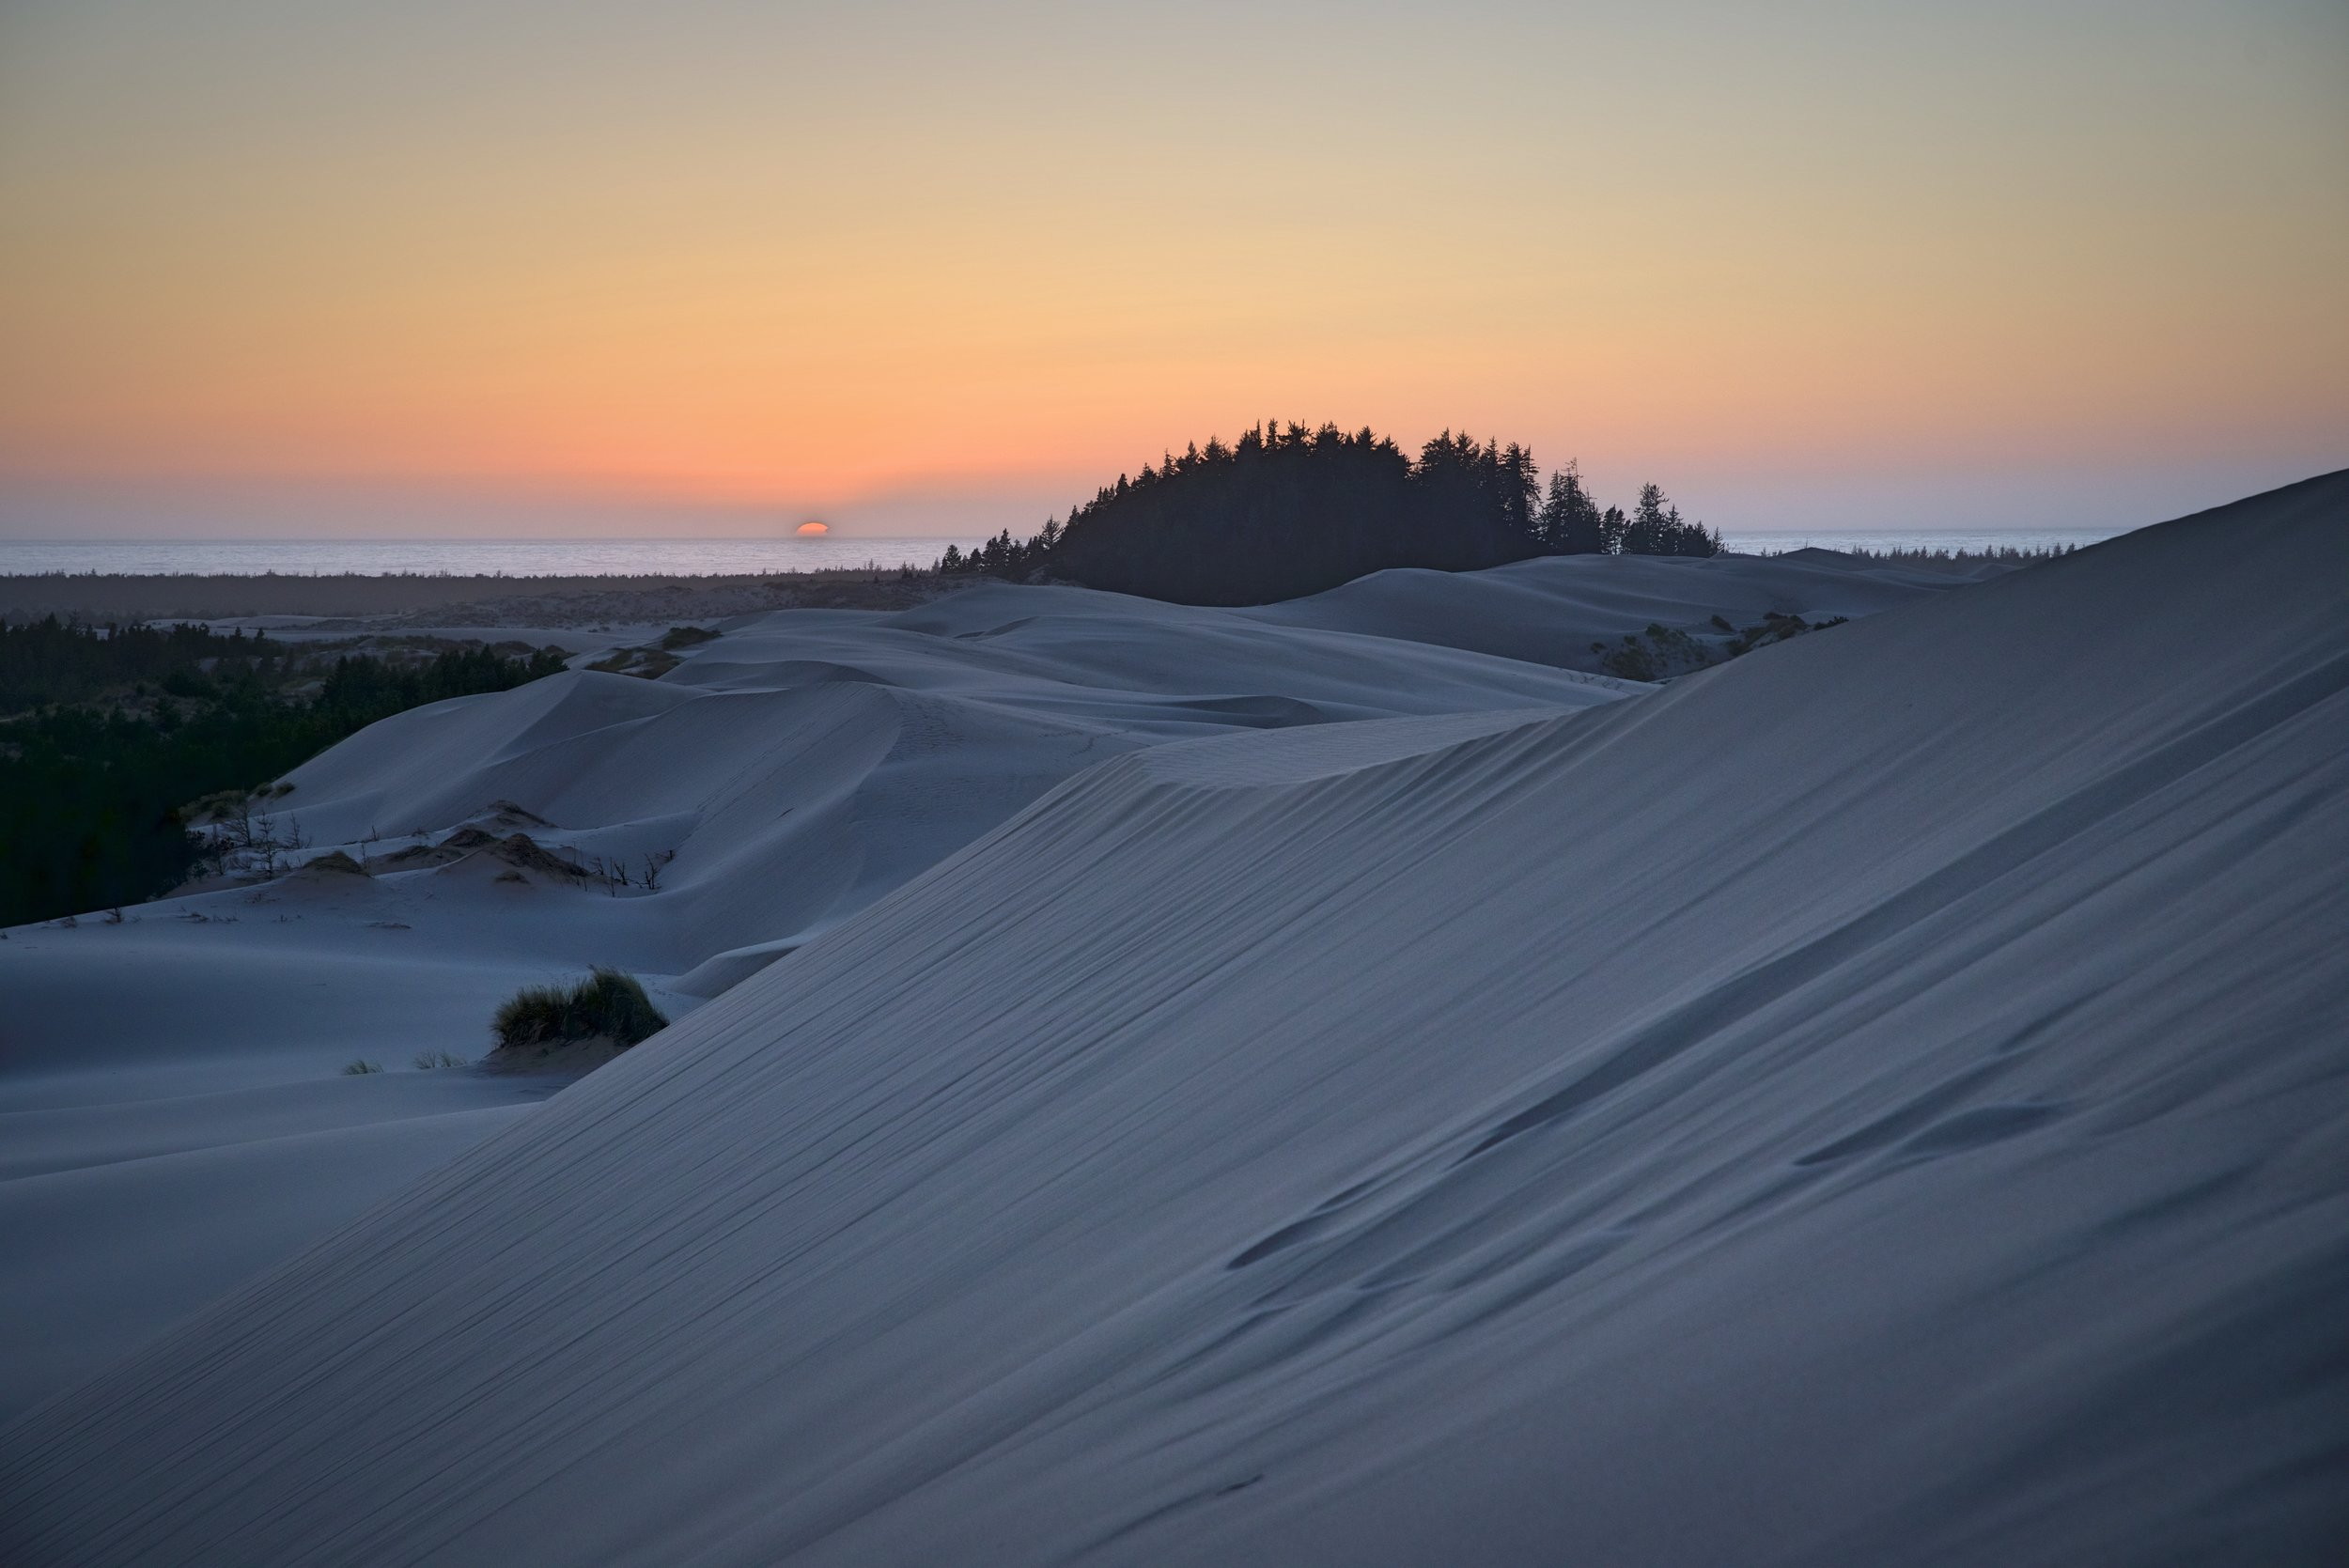 The sand dunes became a blueish gray color as the sun sunk below the horizon.